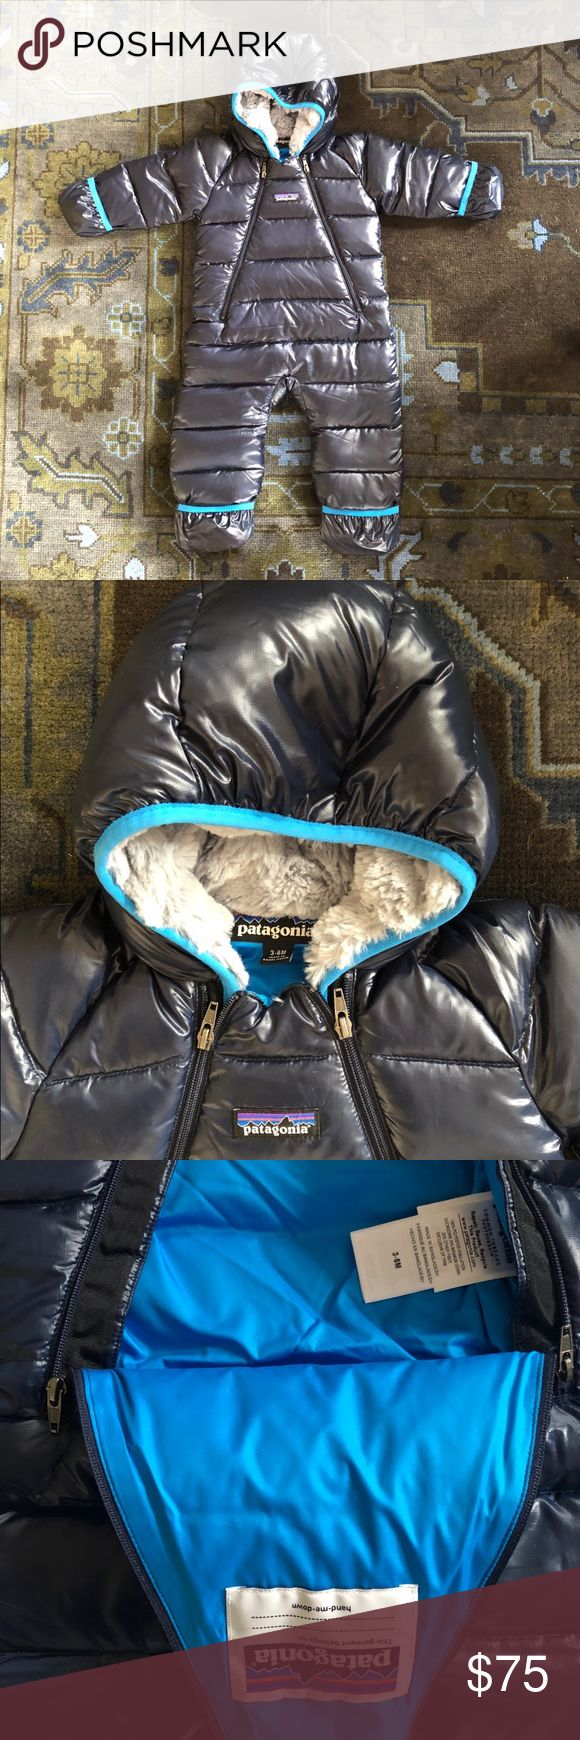 Patagonia Infant Hi Loft Down Bunting 3-6 Months •Polyester outer with water resistant coating  •600-fill traceable duck down •Fleece-lined hood •Generous length  •Double zipper •Very lightly pre-loved, excellent condition, original owner Patagonia Jackets & Coats Puffers